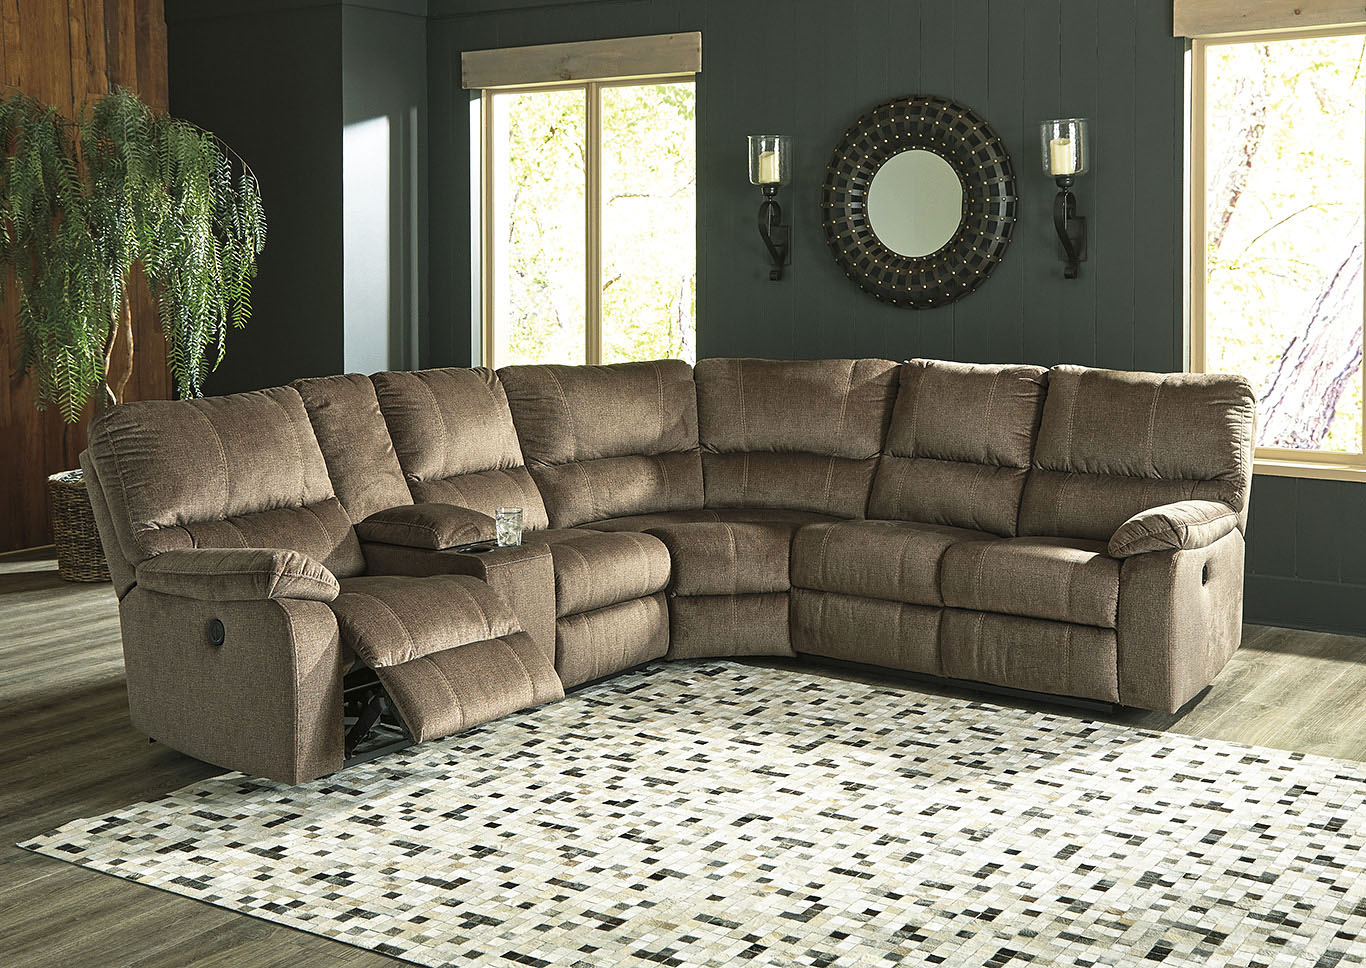 Urbino Mocha Power Reclining Sectional w/Console,Signature Design By Ashley